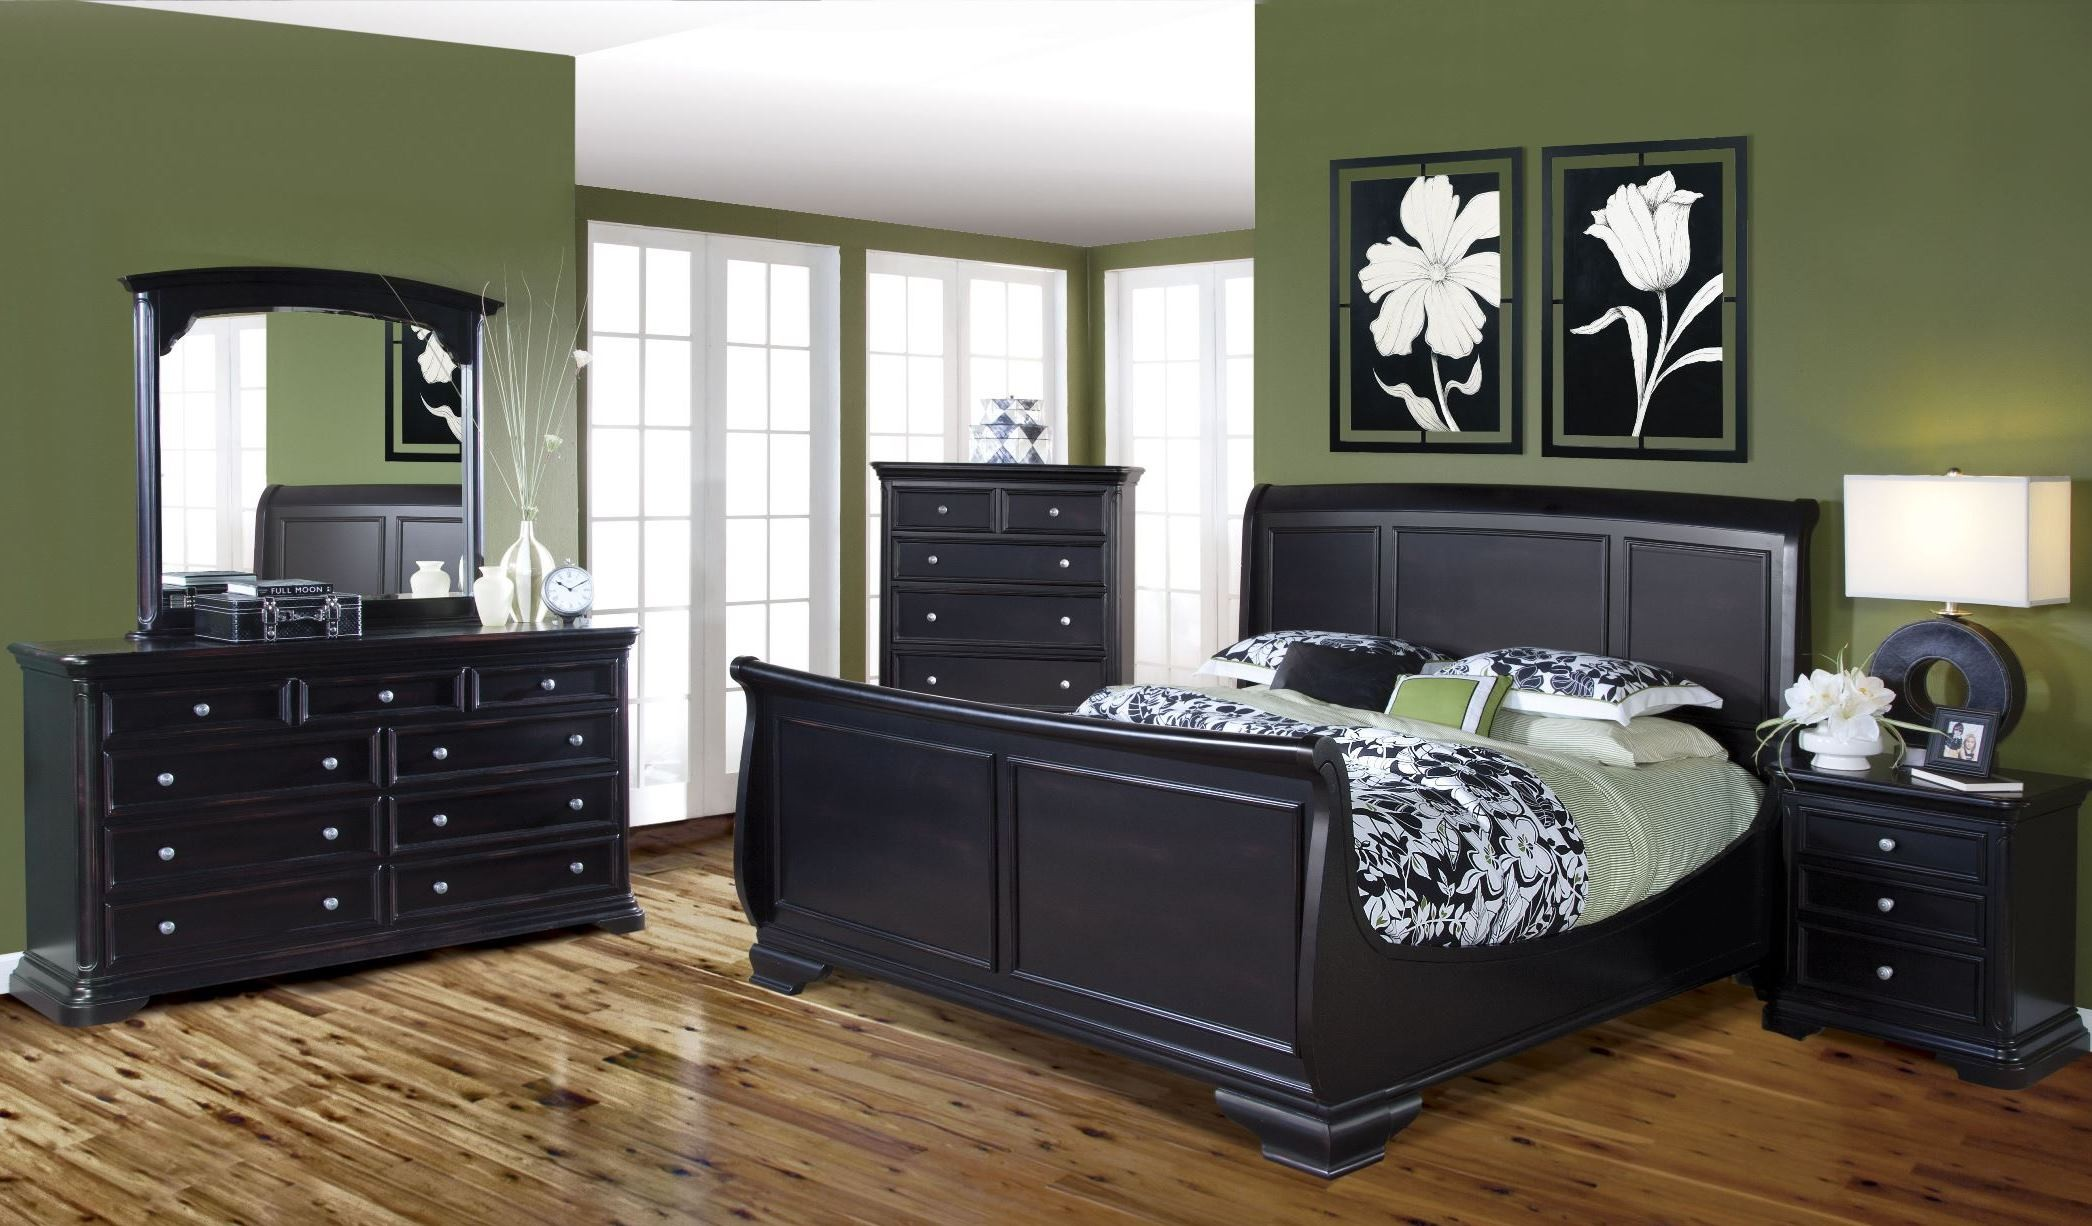 maryhill rubbed black sleigh bedroom set from new classics 2105 311 321 331 coleman furniture. Black Bedroom Furniture Sets. Home Design Ideas